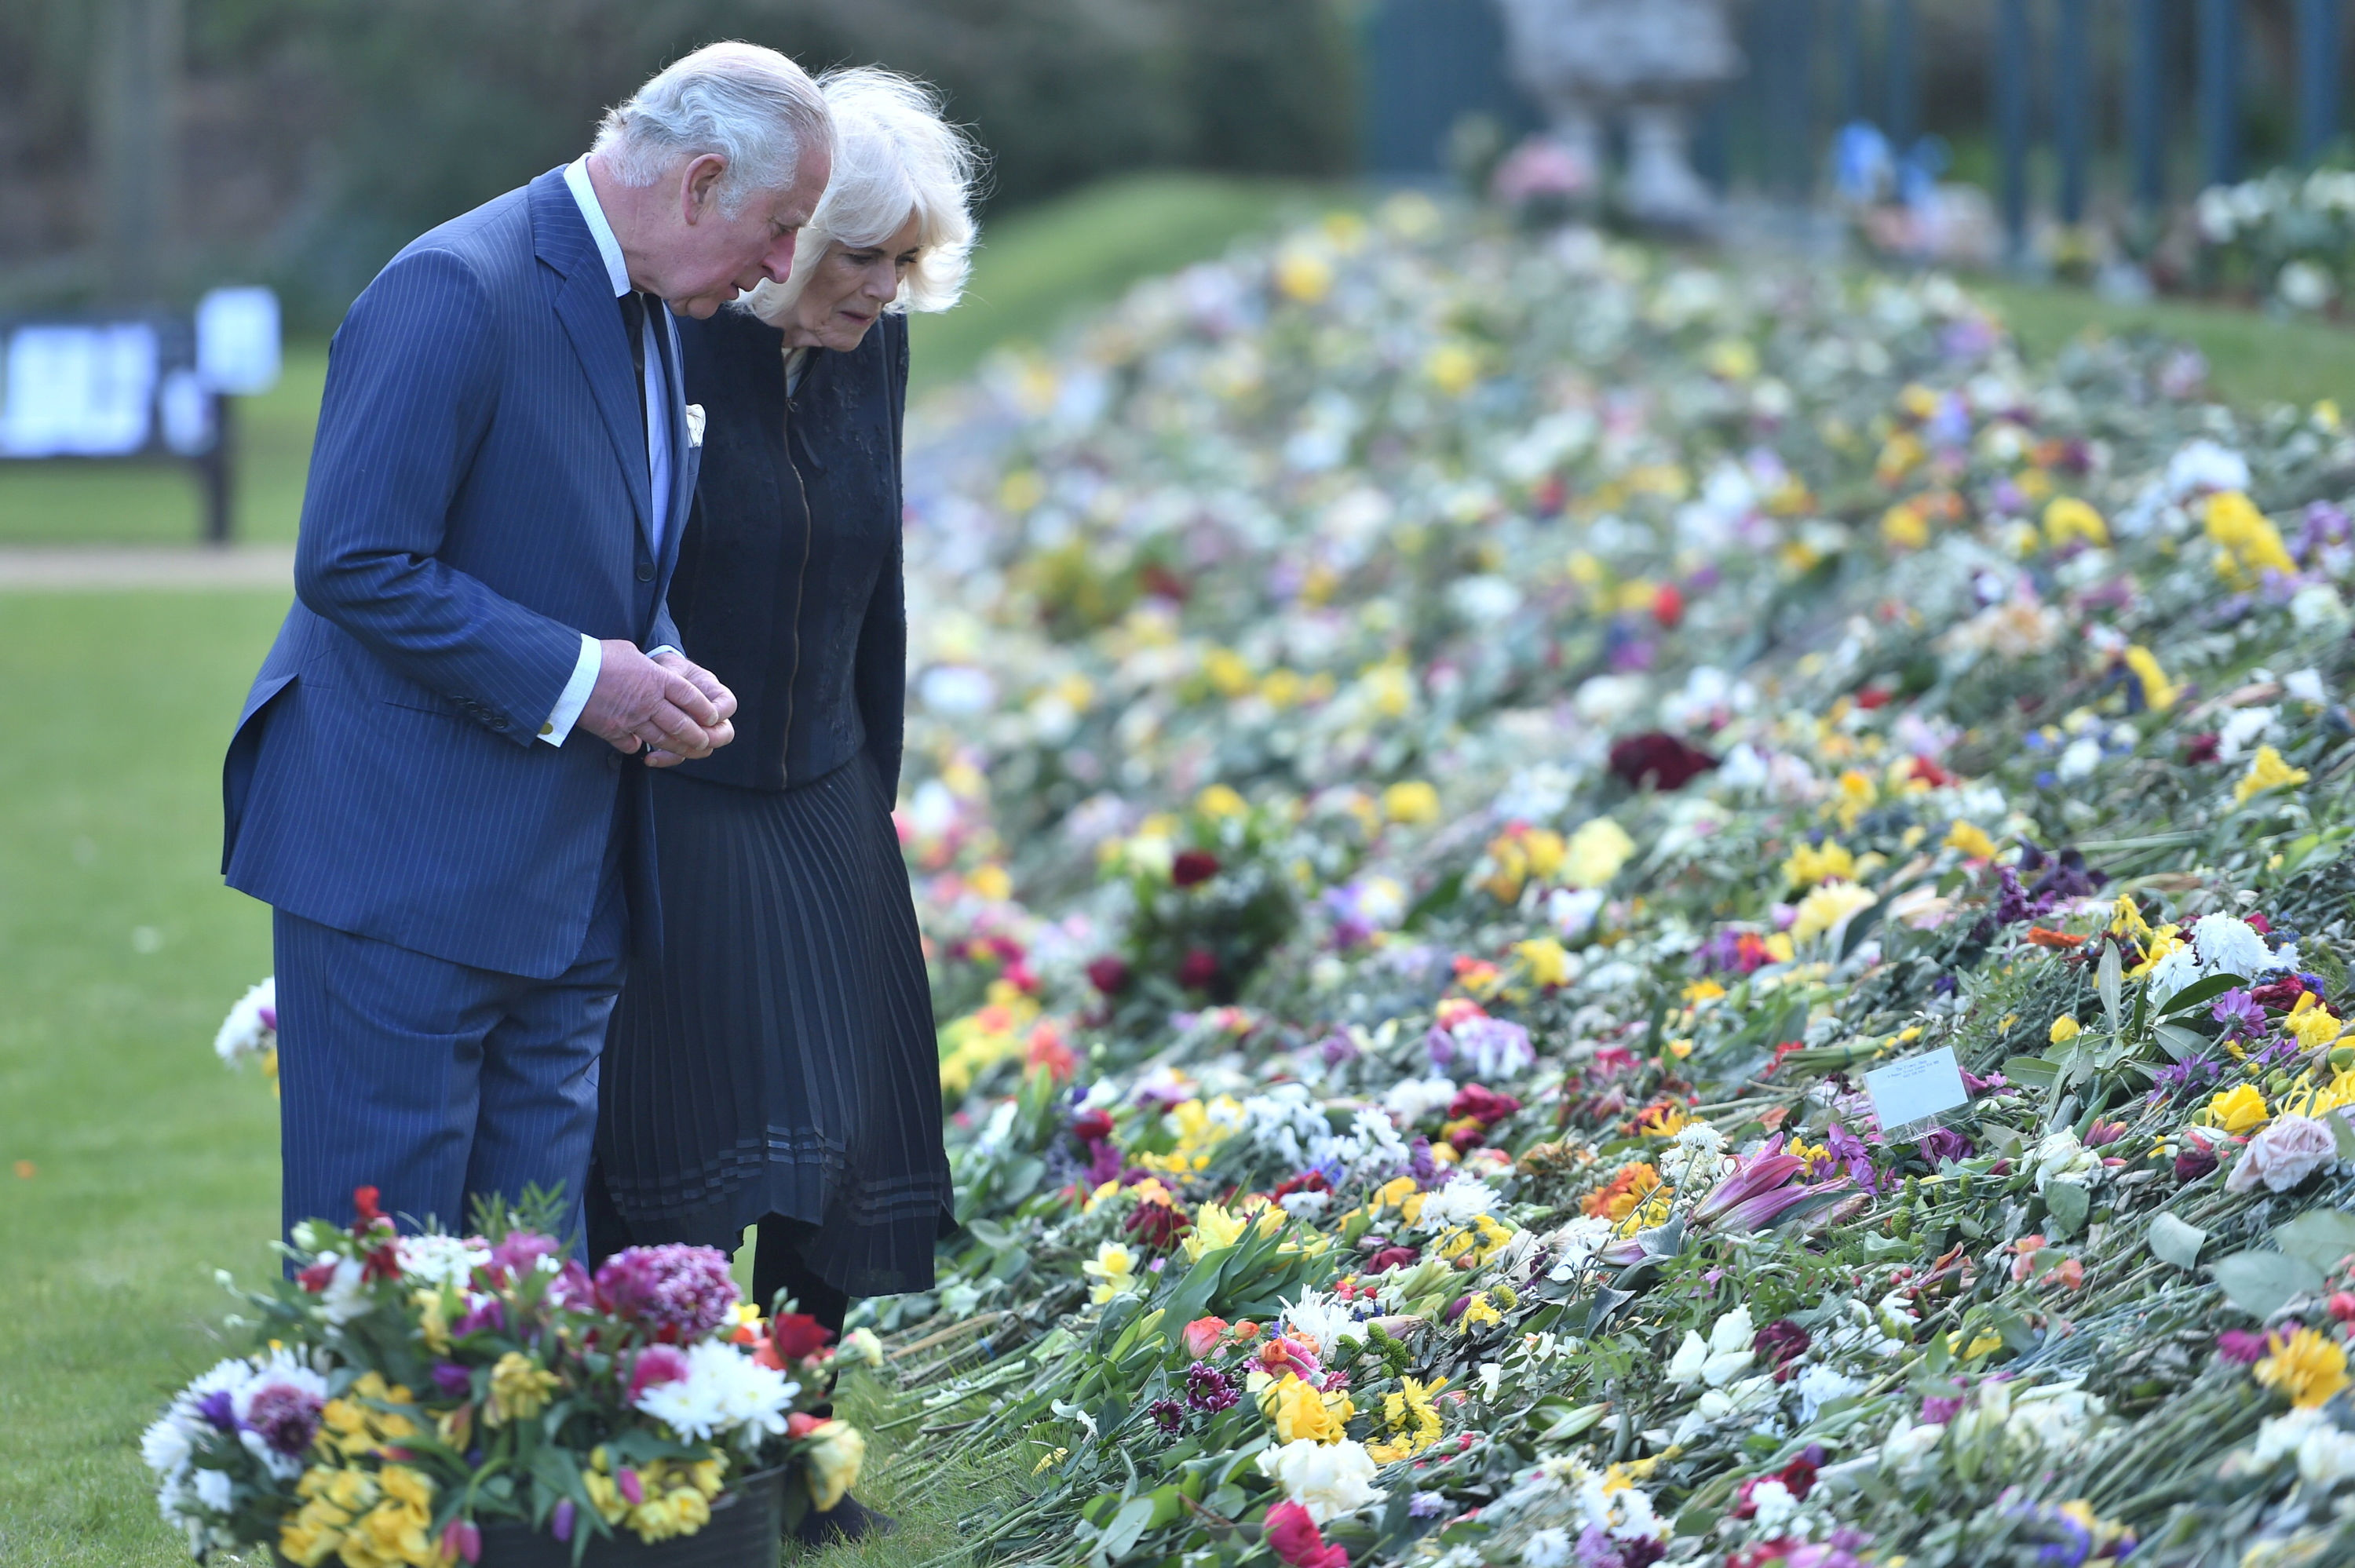 Britain's Prince Charles and Camilla, Duchess of Cornwall, visit the gardens of Marlborough House to view the flowers and messages left by members of the public outside Buckingham Palace following the death of Britain's Prince Philip, in London, Britain April 15, 2021. Jeremy Selwyn/Pool via REUTERS